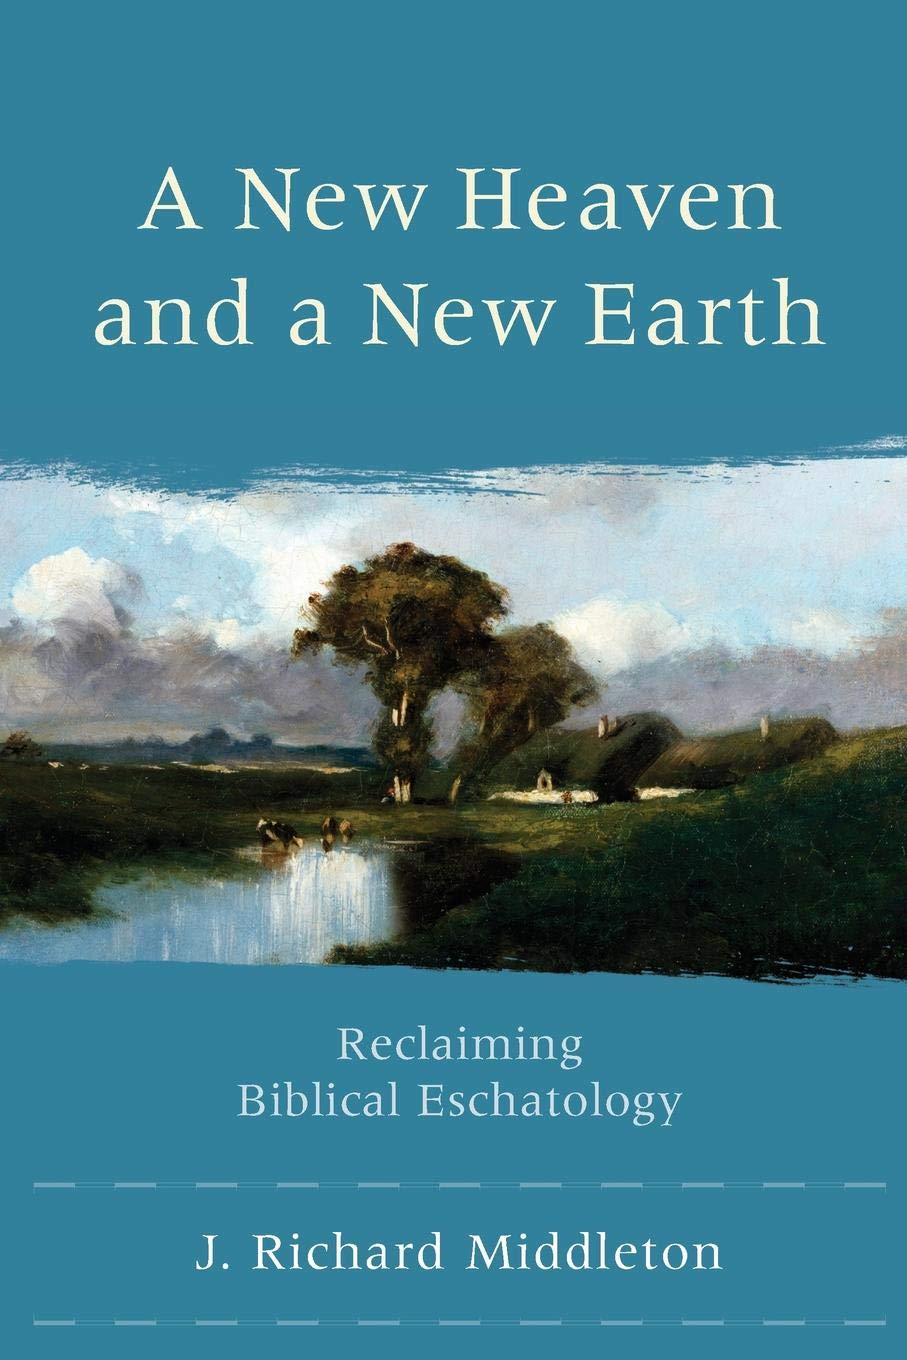 A New Heaven and a New Earth: Reclaiming Biblical Eschatology: J. Richard  Middleton: 9780801048685: Amazon.com: Books